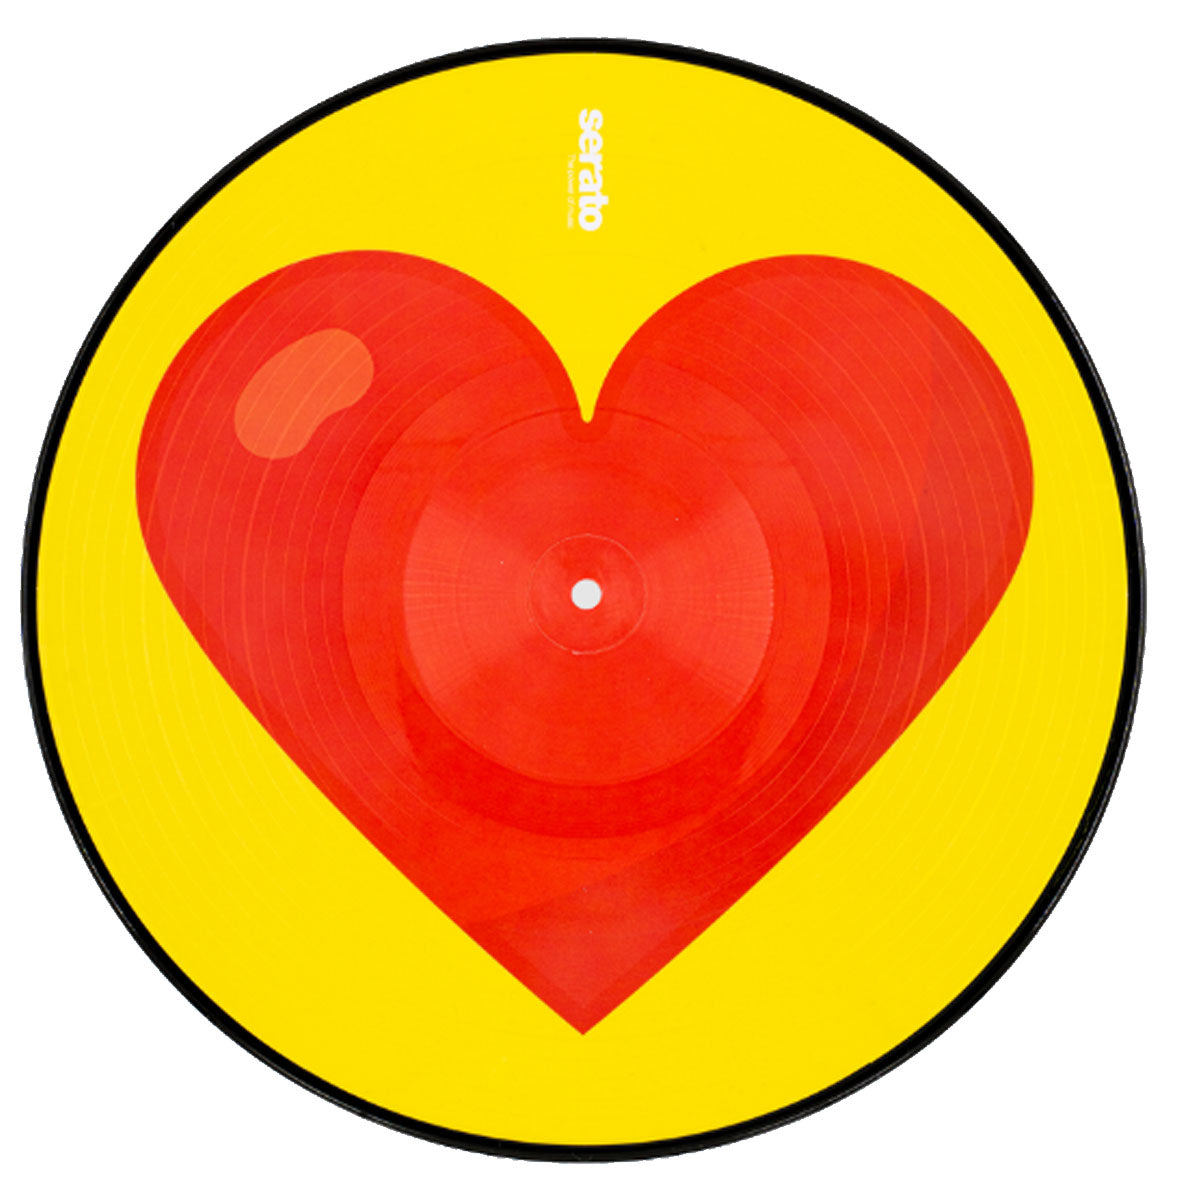 Serato Control Vinyl 2x12inch Reversible Emoji (two designs per set) Series 3 Donut/Heart